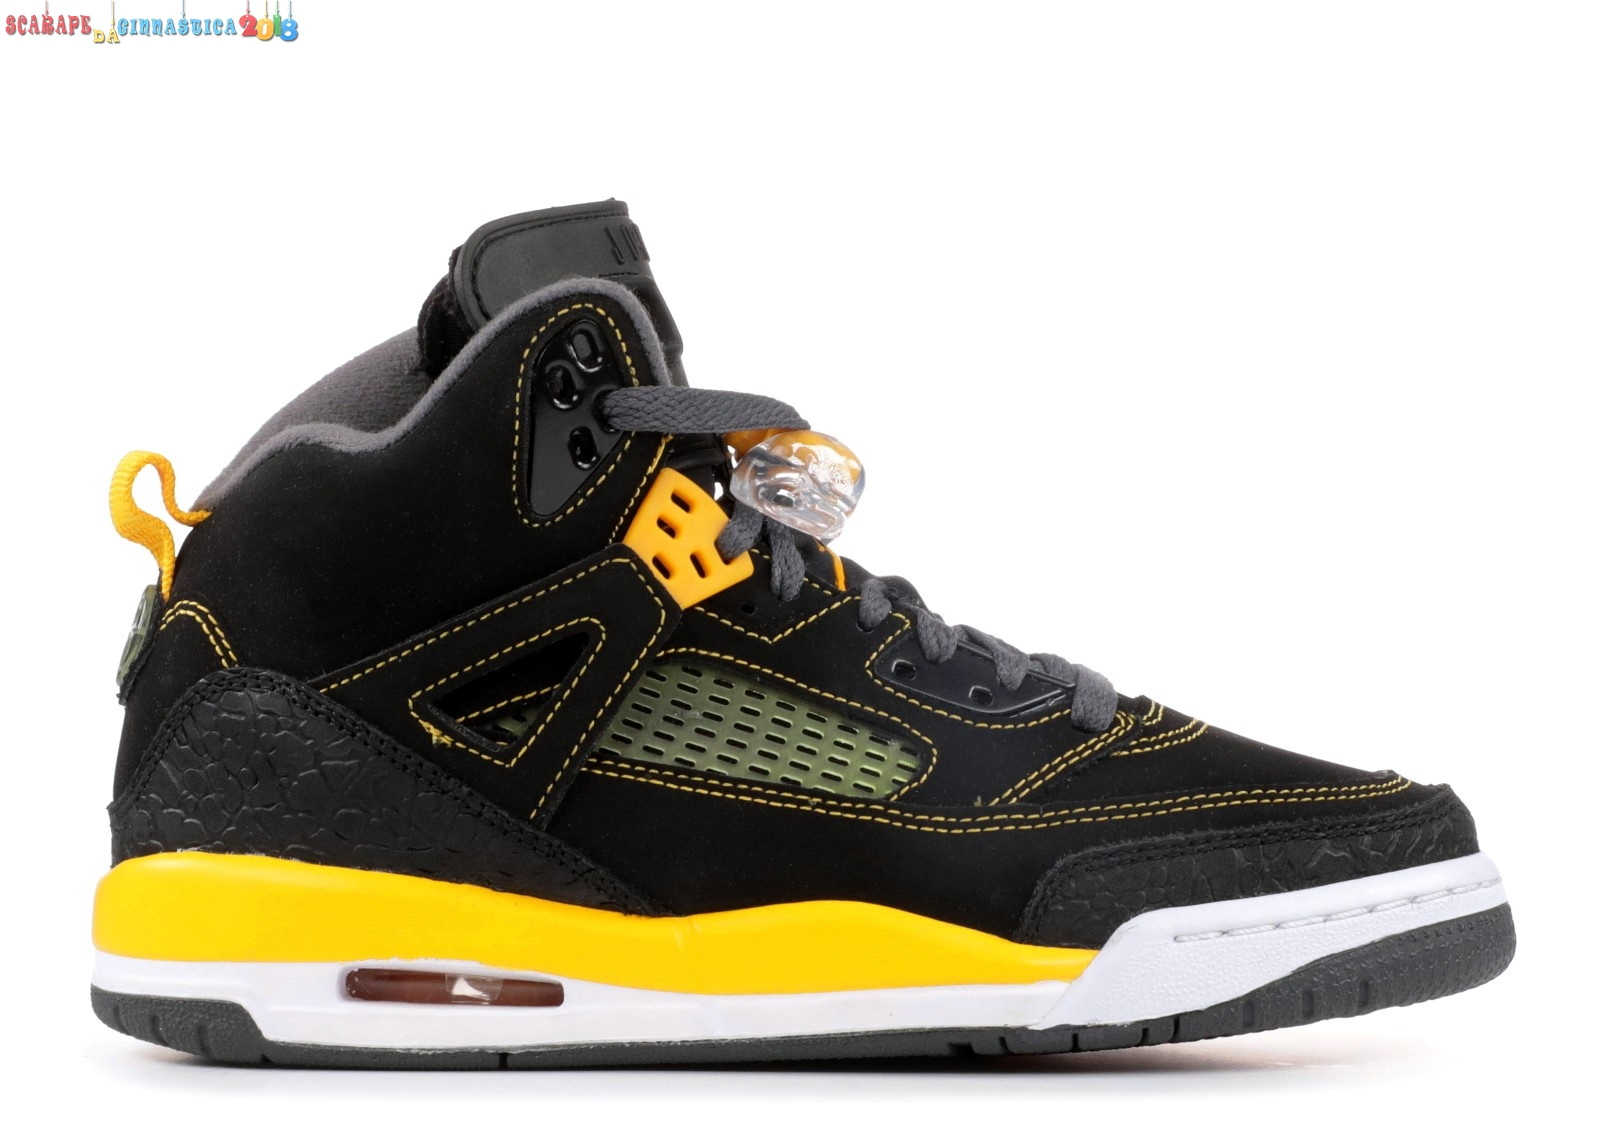 Replica Air Jordan Spiz'Ike (Gs) Nero Giallo (317321-030) Online